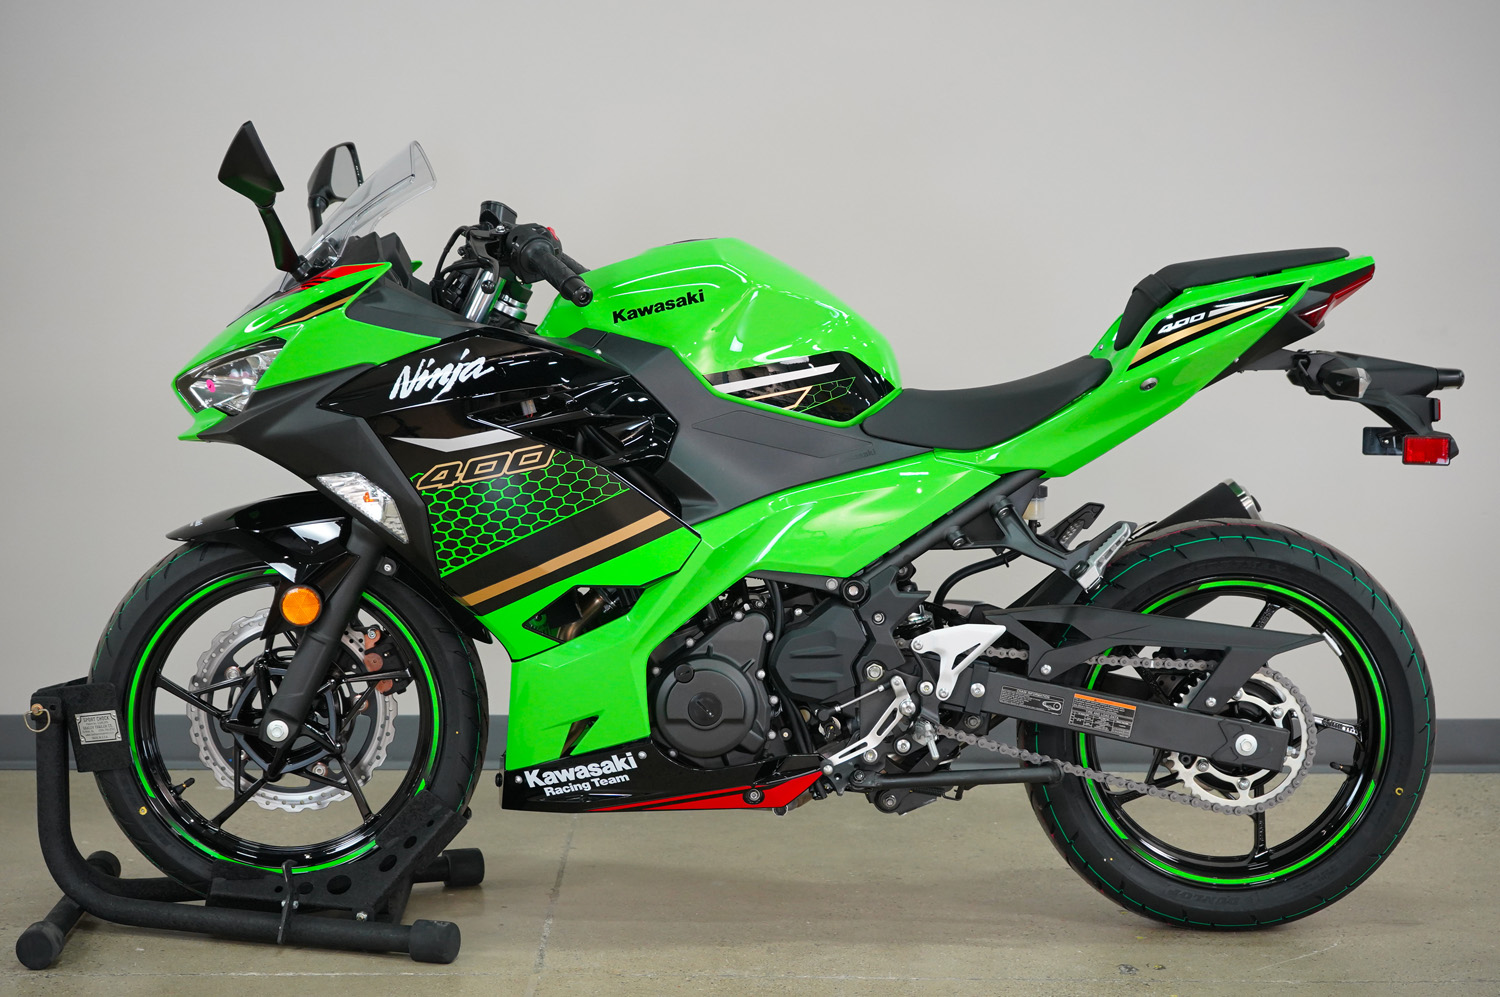 Inventory From Kawasaki Flat Out Motorsports Indianapolis In 317 890 9110